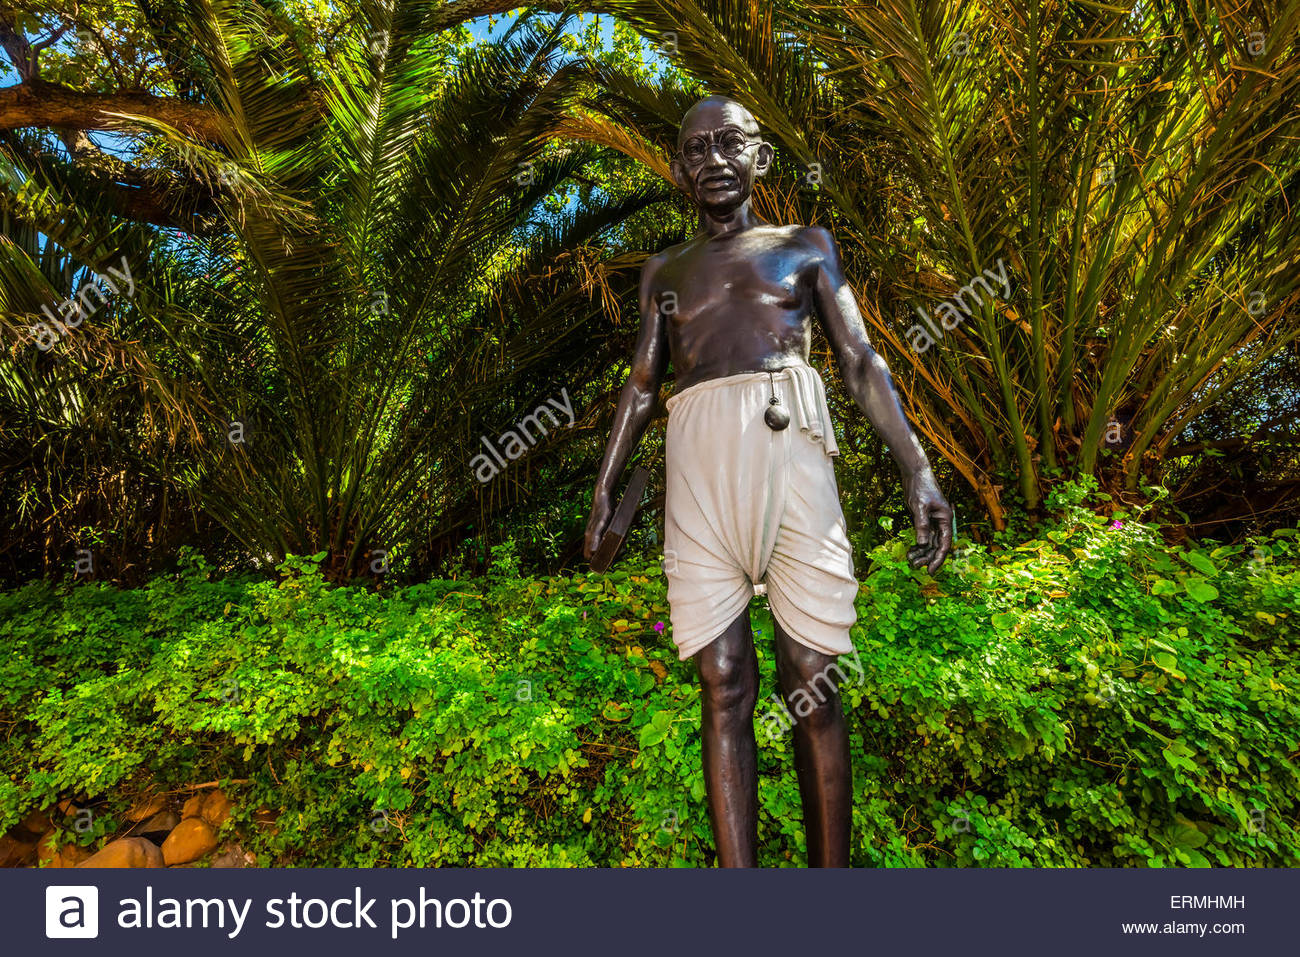 Bronze statue of Mahatma Gandhi by Anton Momberg, Belmond Mount Nelson Hotel, Cape Town, South Africa. - Stock Image